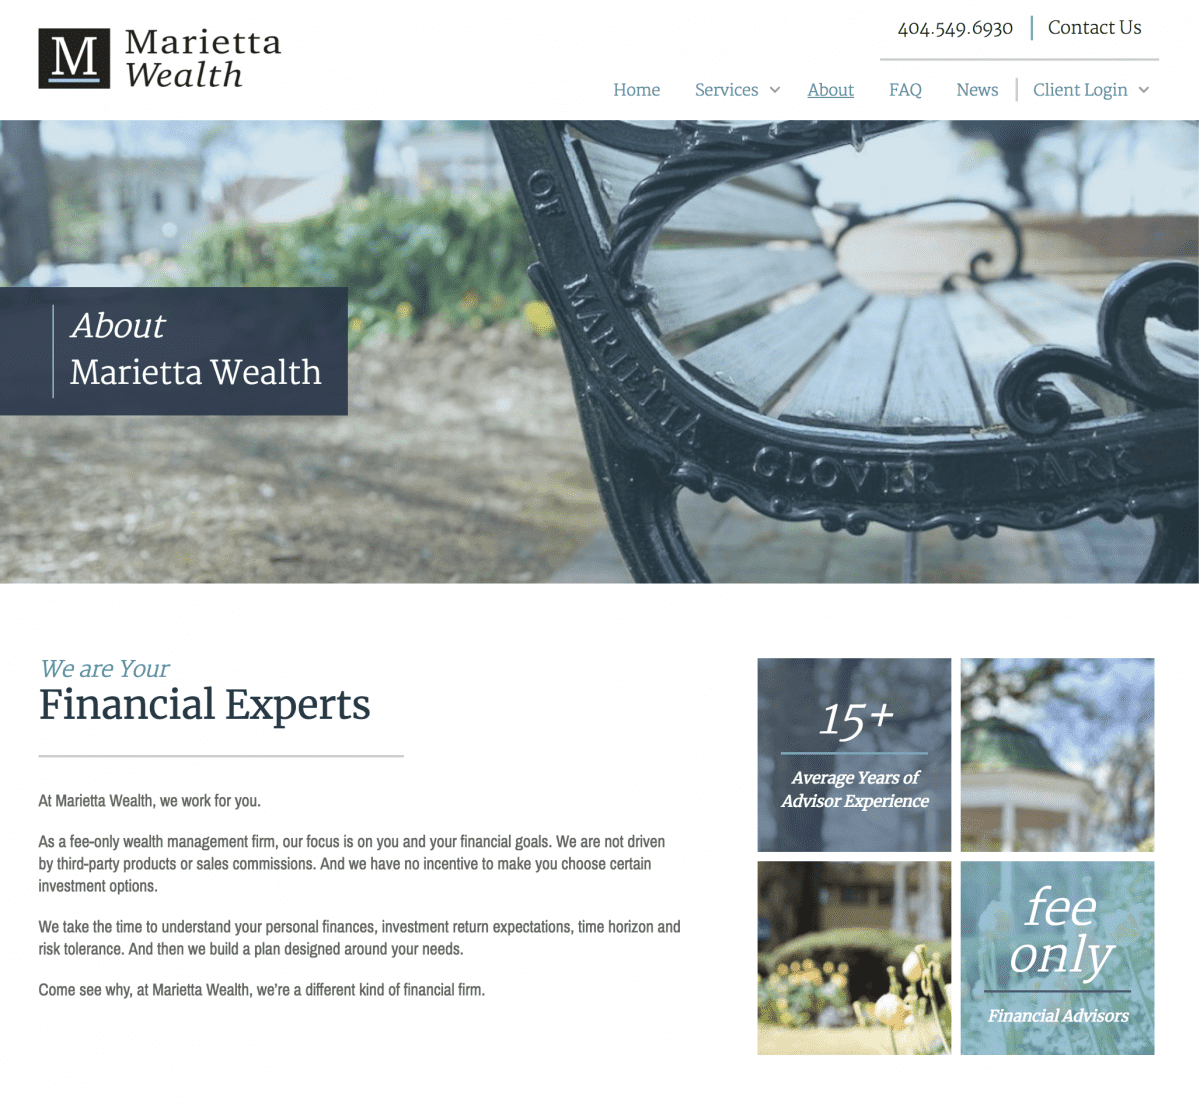 Image of website for Marietta Wealth